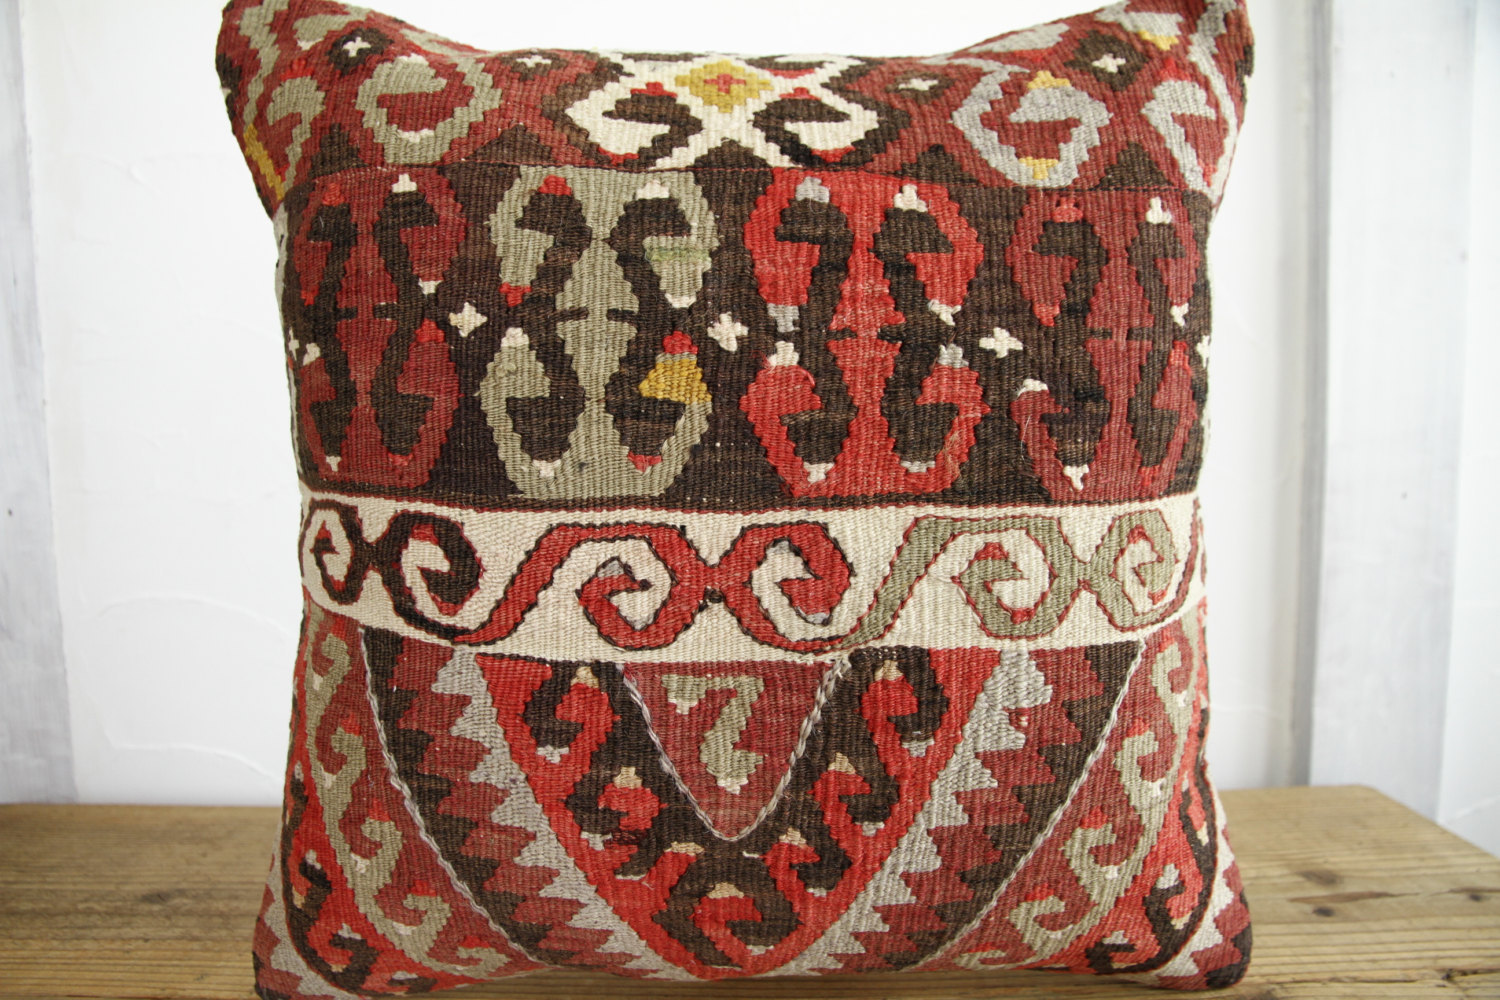 Kilim Pillows |18x18| Decorative Pillows | 281 | Accent Pillows, Kilim cushion